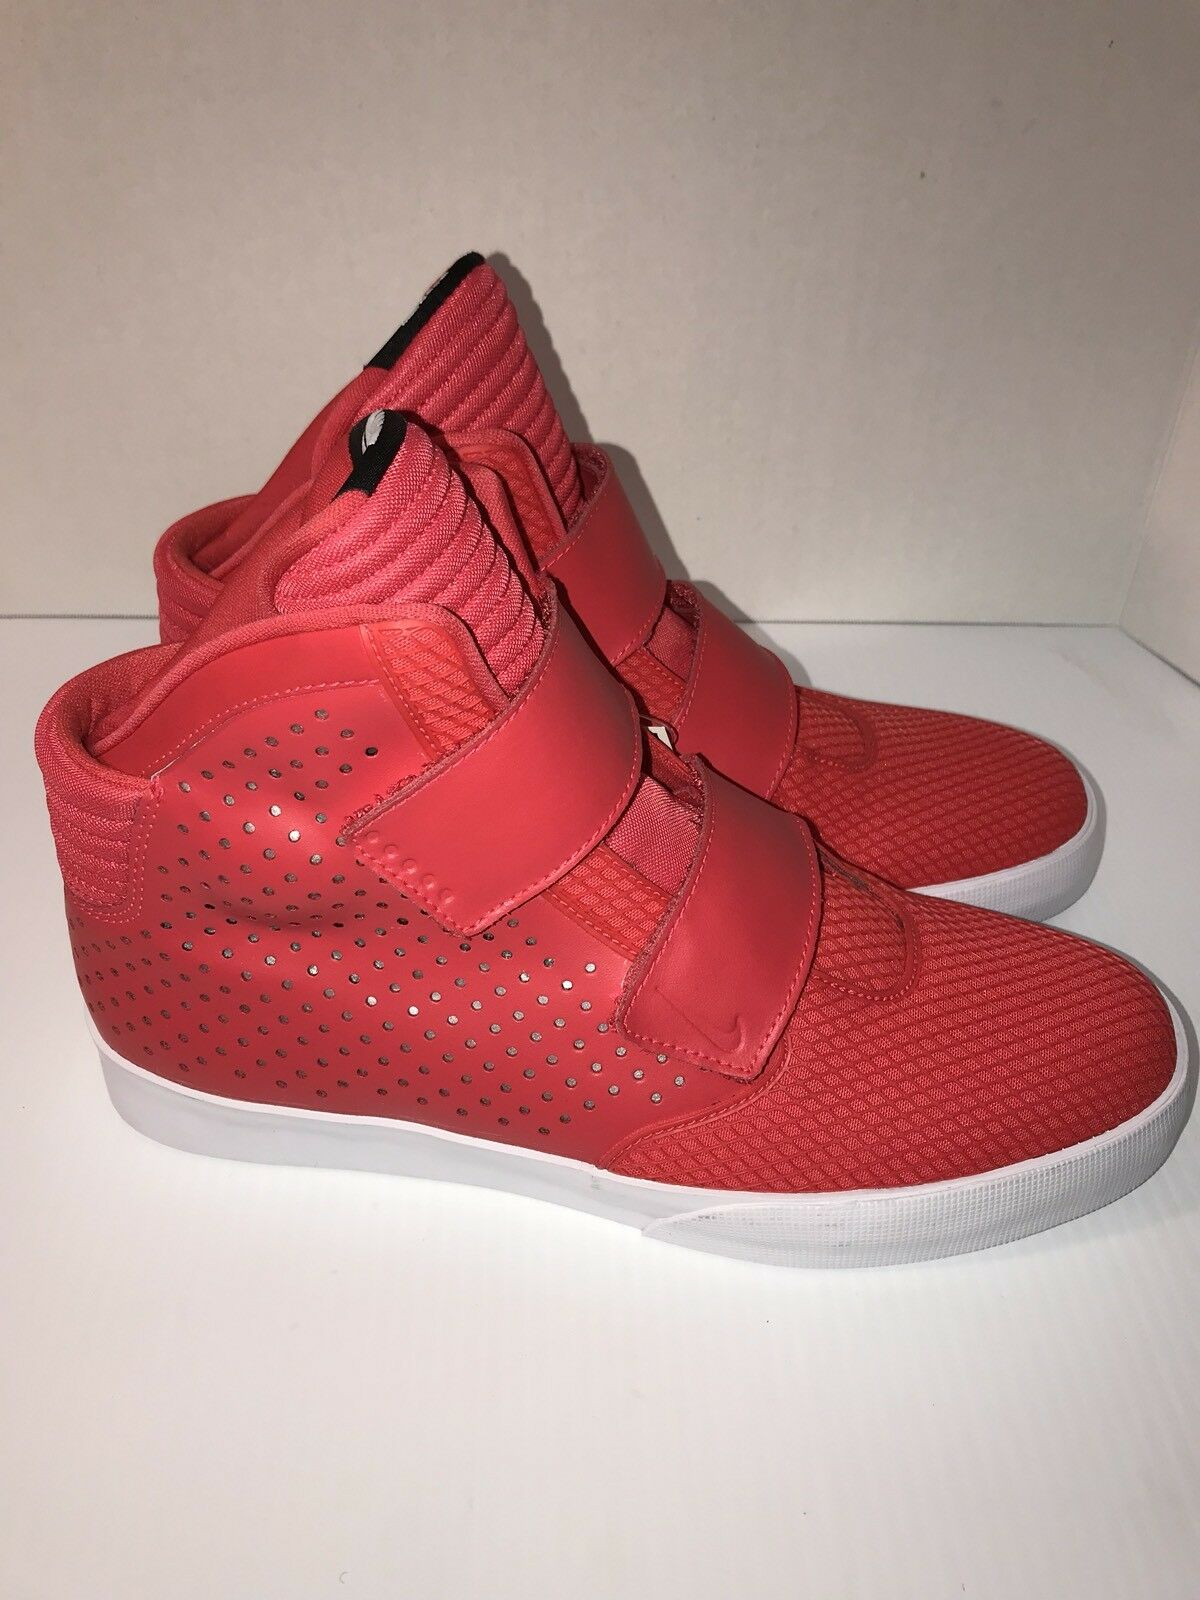 nike flystepper 2K3 PRM mens hi top trainers 677473-602 sneakers shoes US 11.5